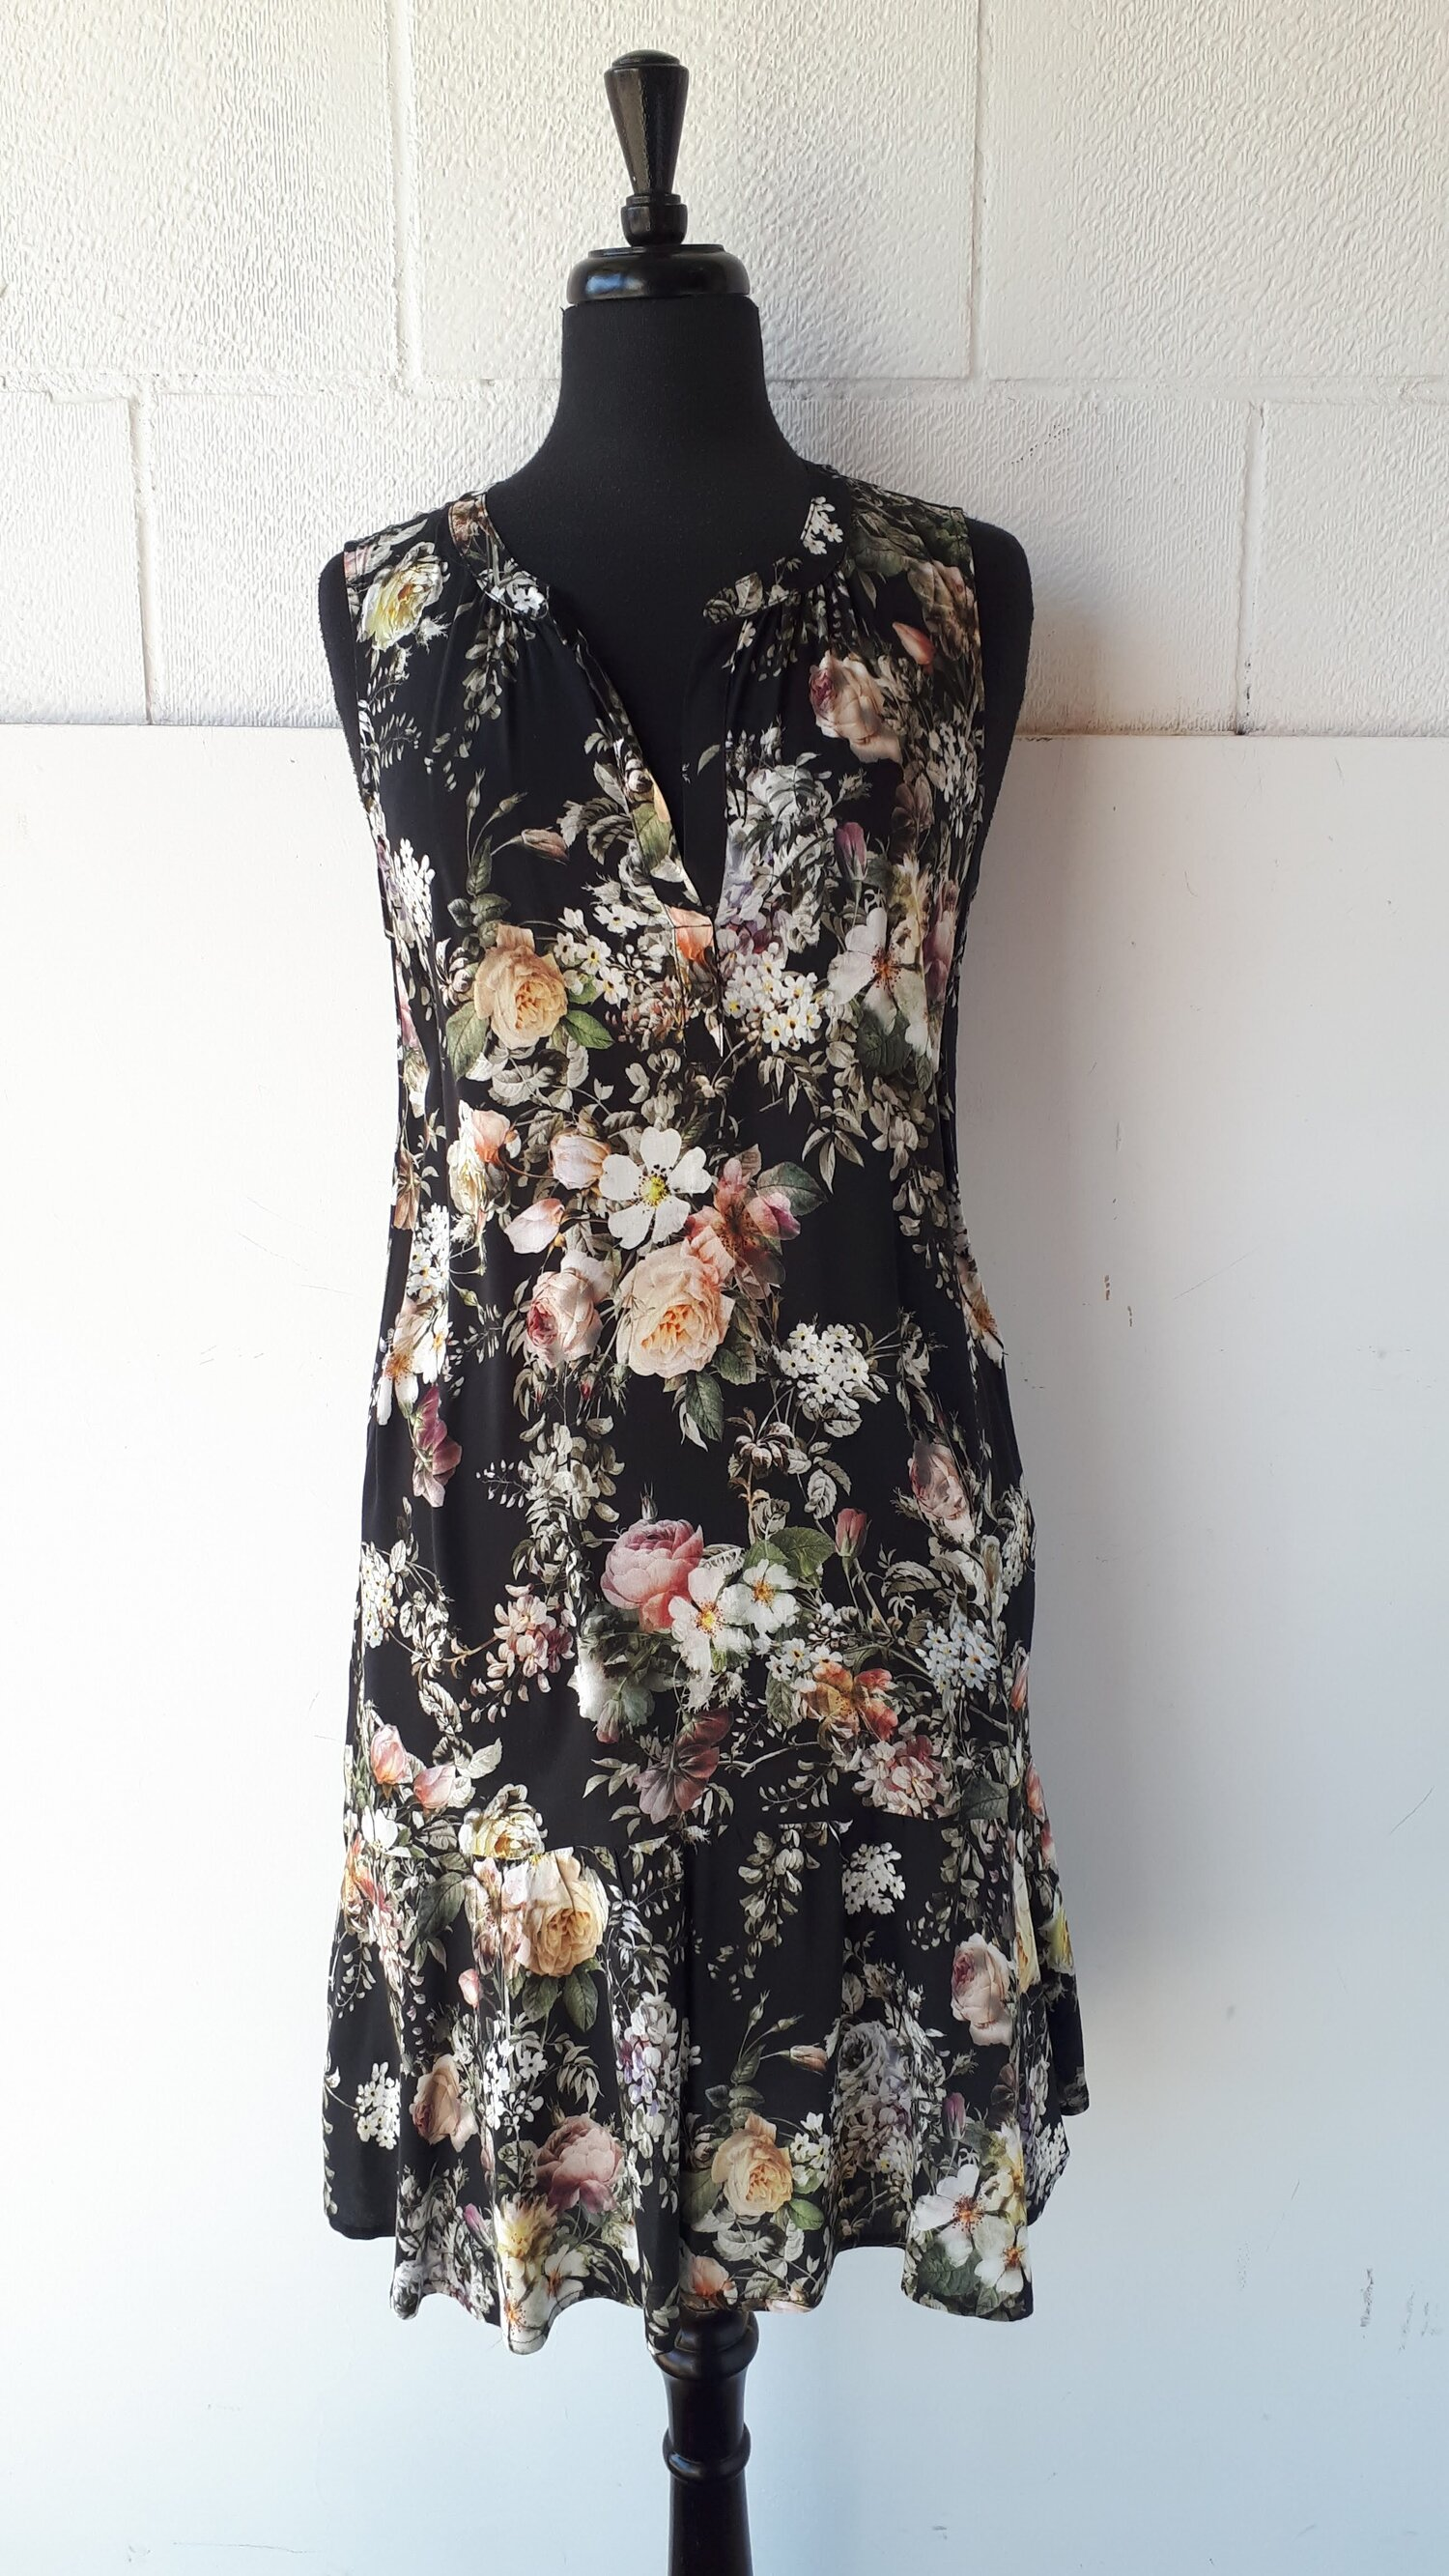 Bloom dress, Size M  Red Pony Consignment